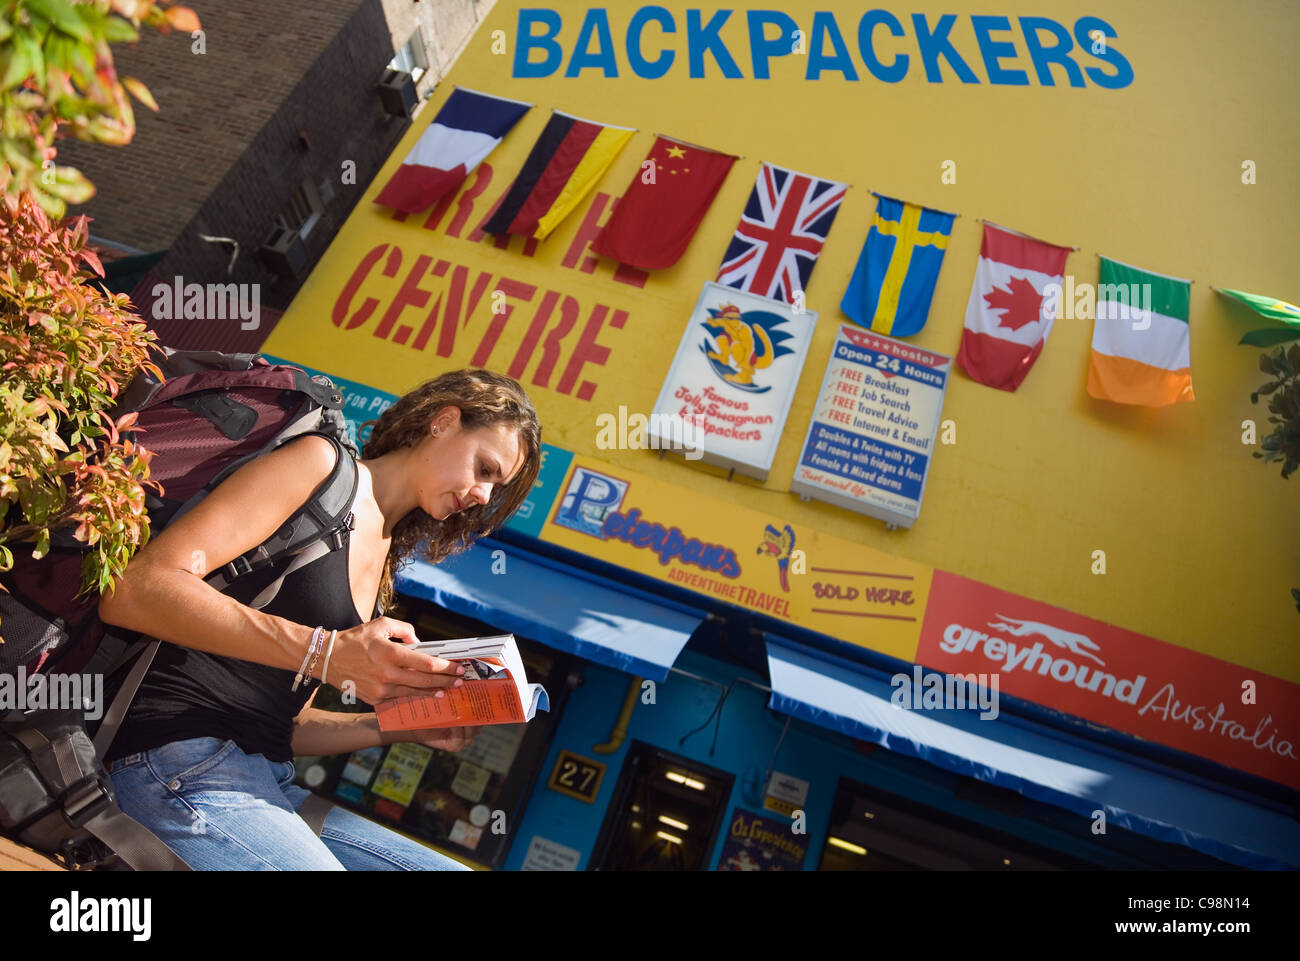 Young woman reading guidebook en dehors d'un backpacker hostel. Kings Cross, Sydney, New South Wales, Australia Photo Stock